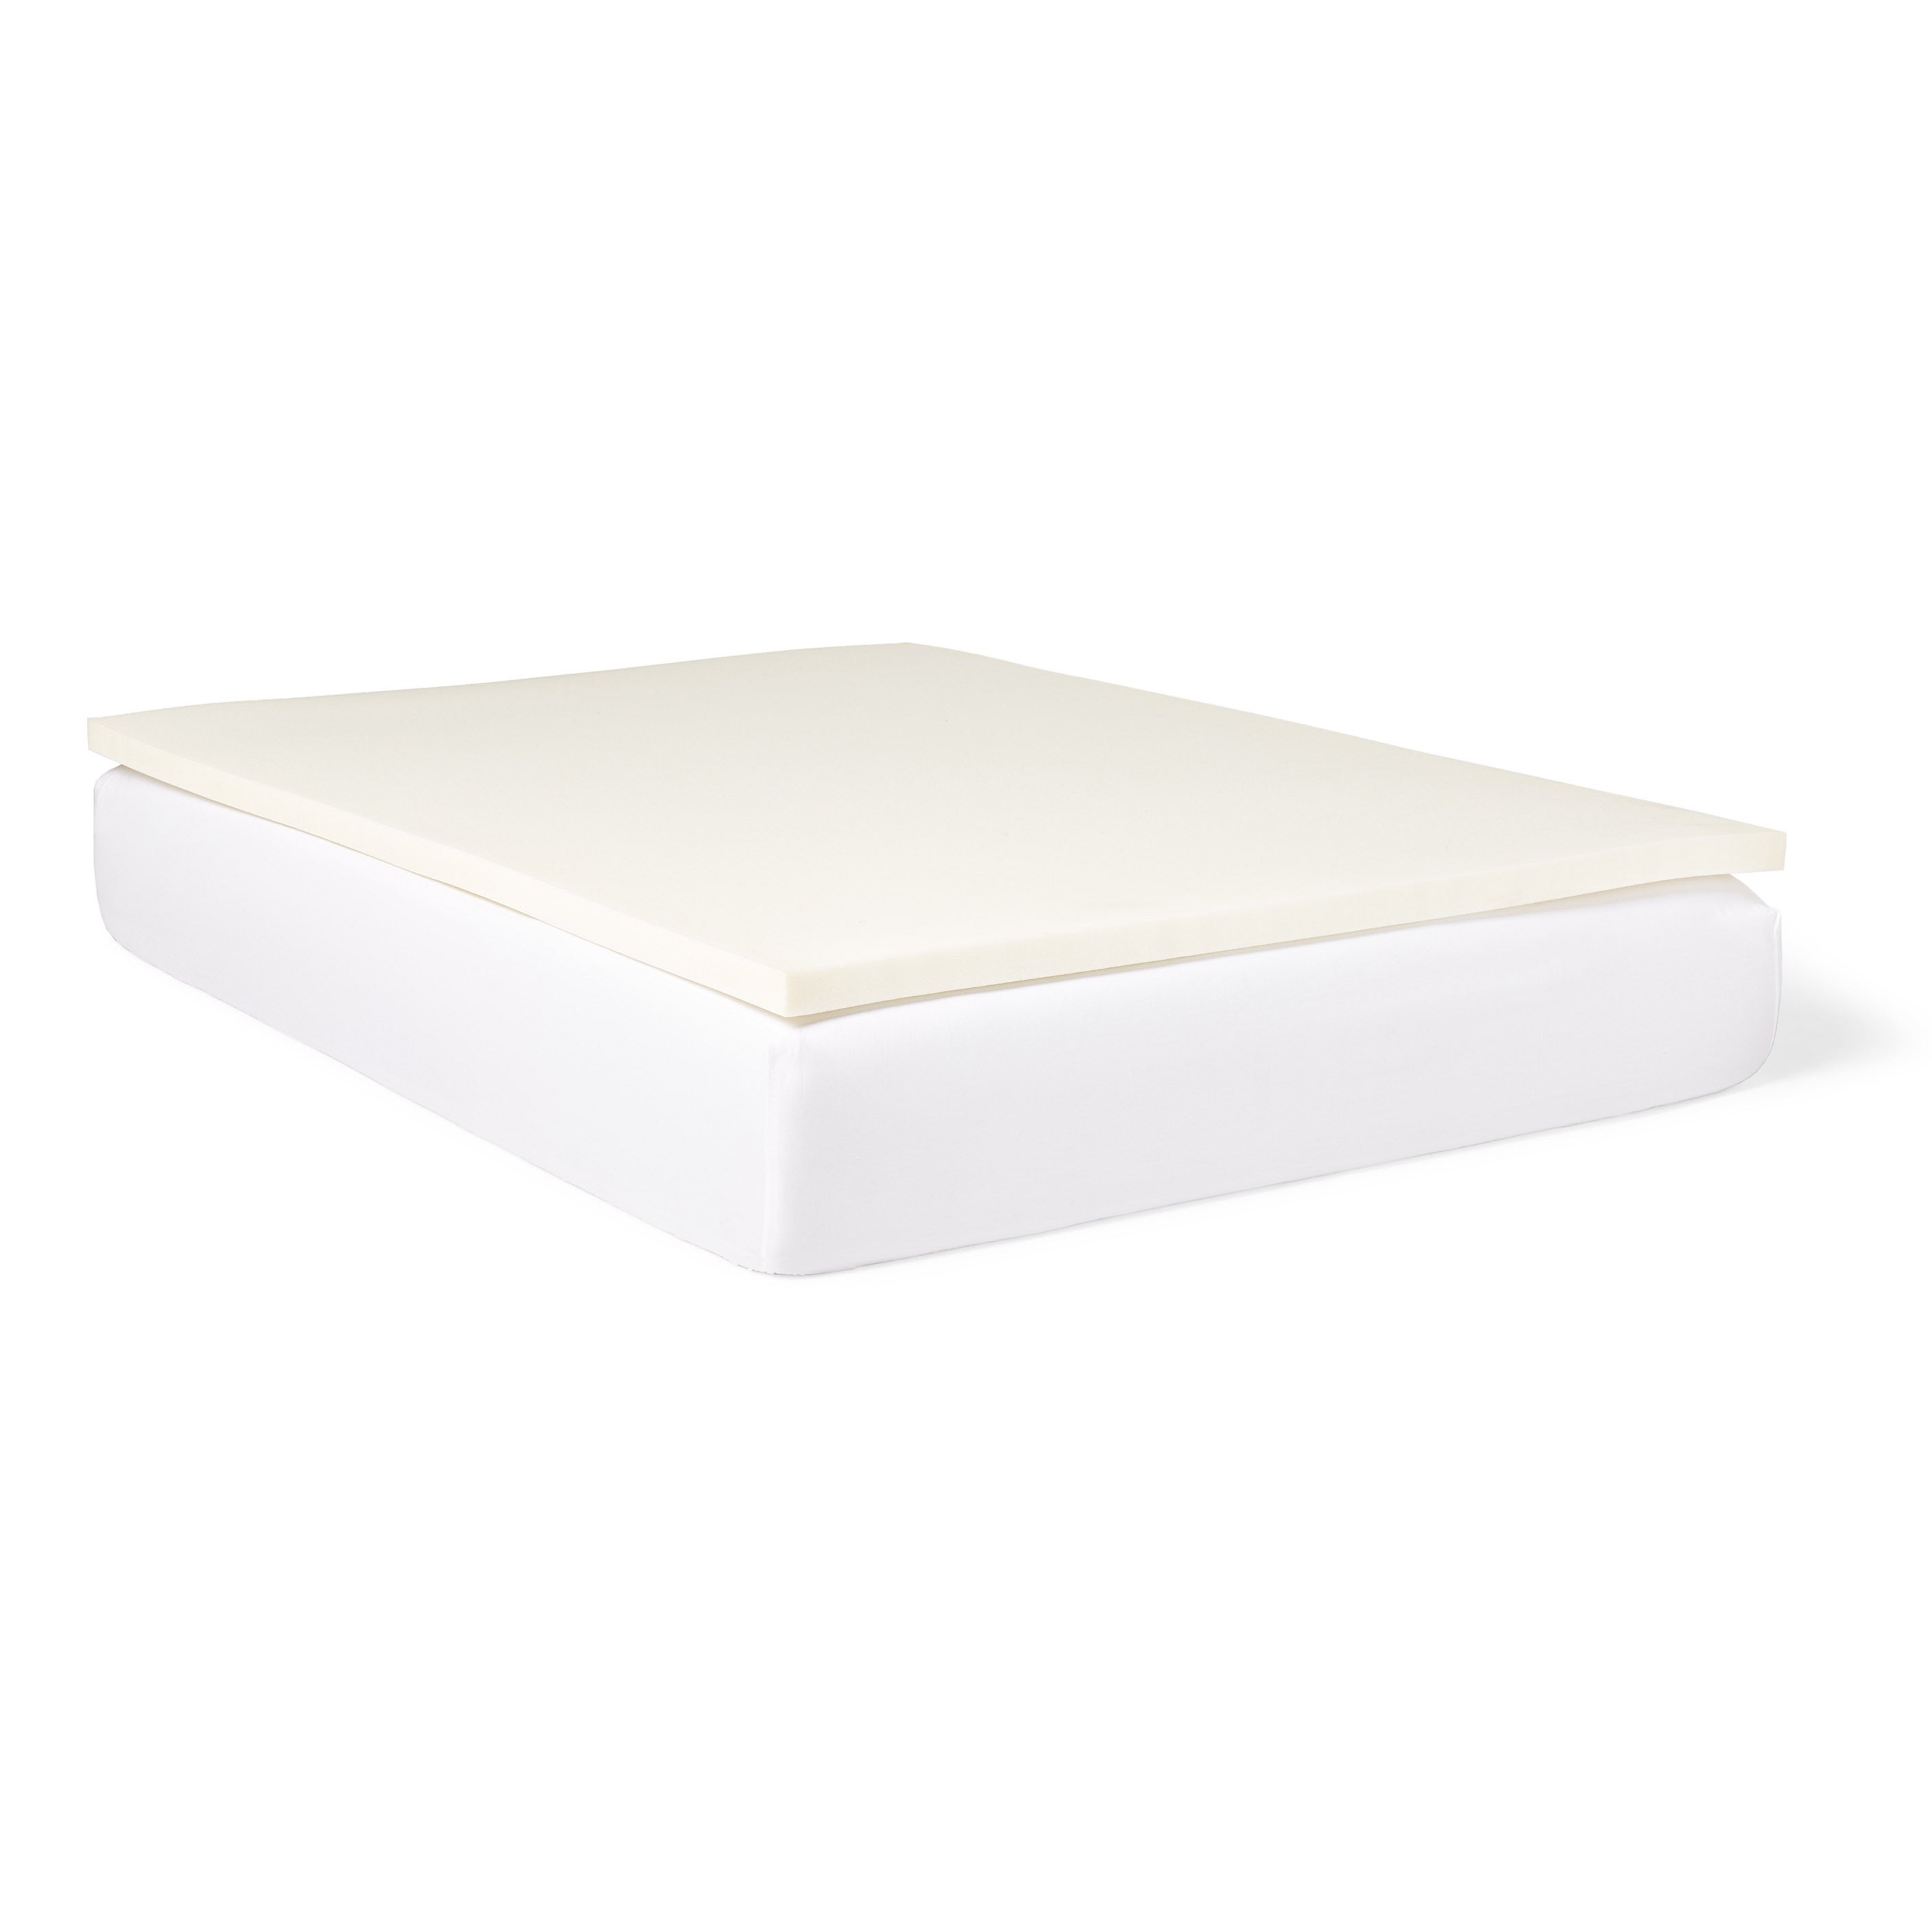 topper en toppers mattress and context overlays memory foam therapy pad bedroom relax pillowtalk categories pillow p talk